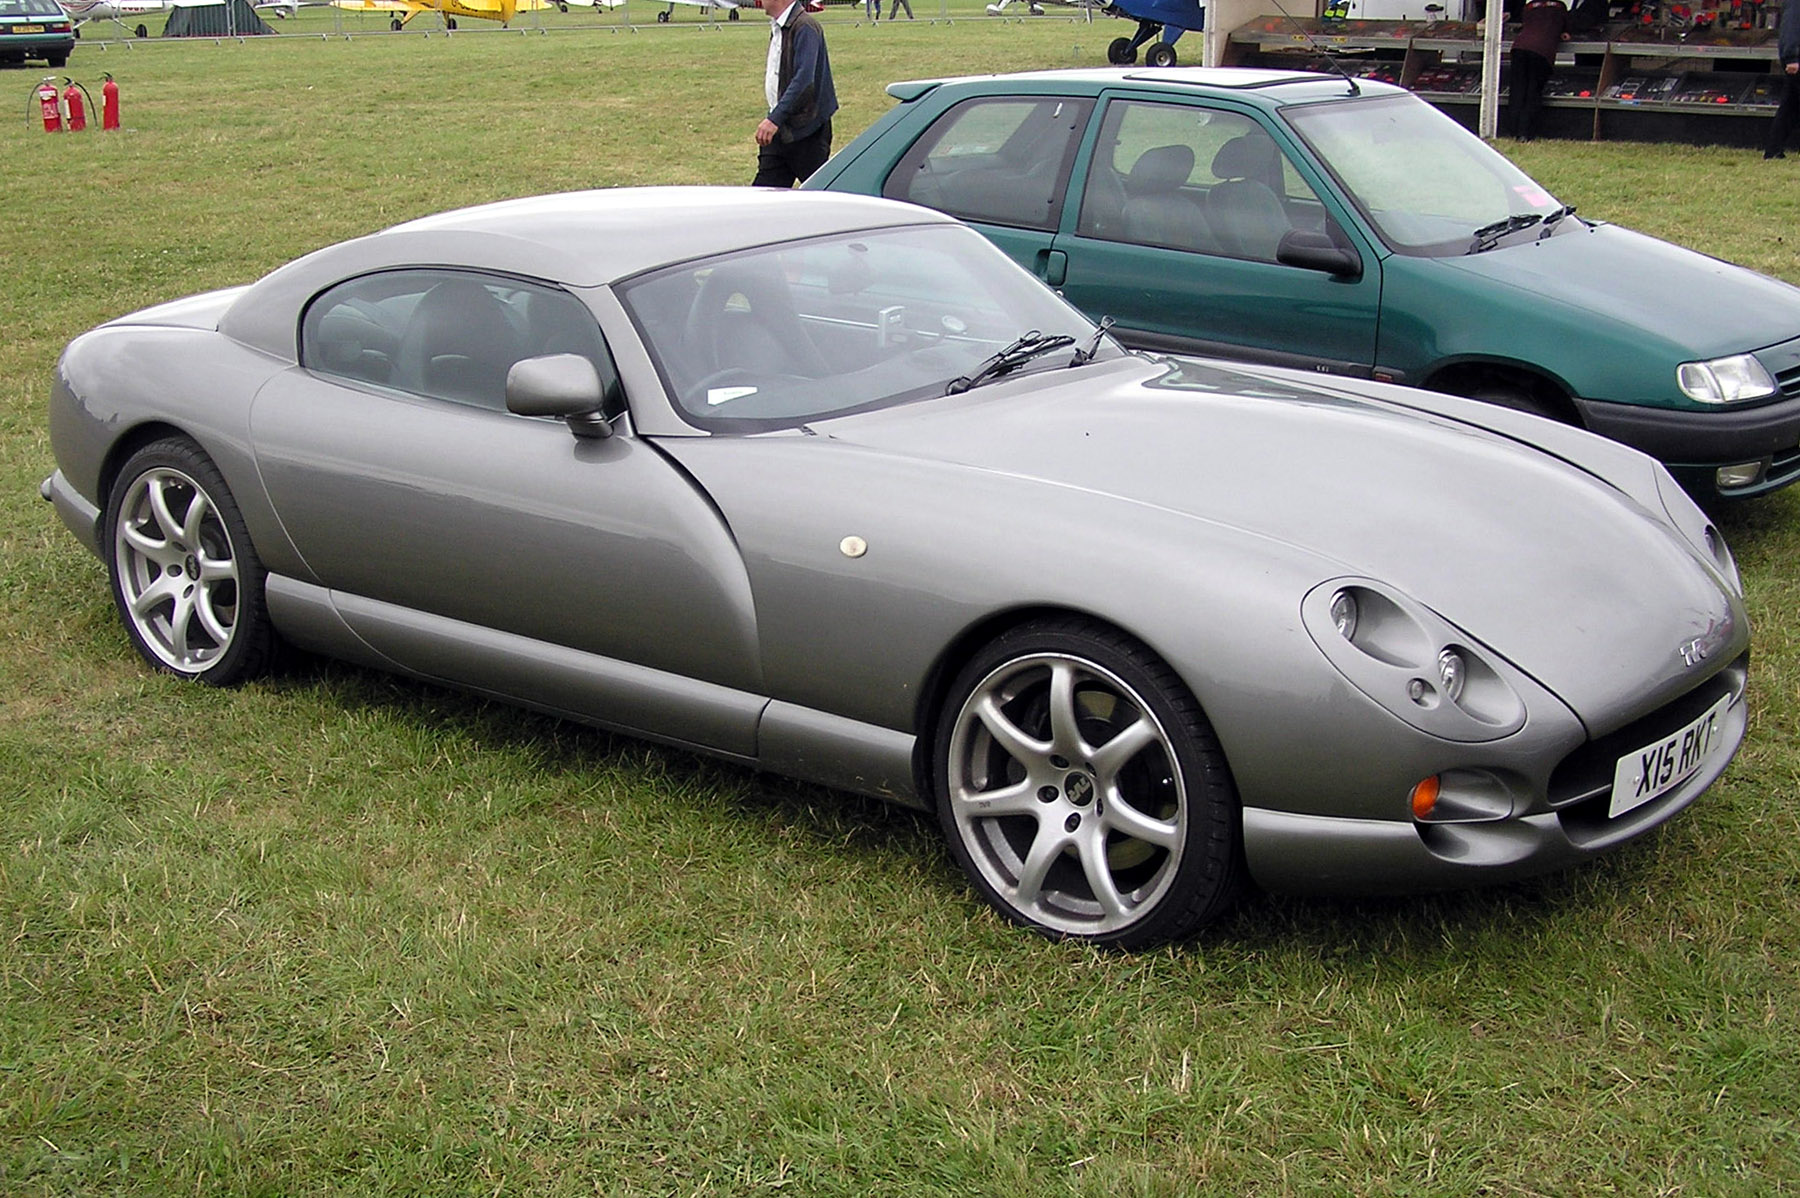 Tvr Speed 12 For Sale